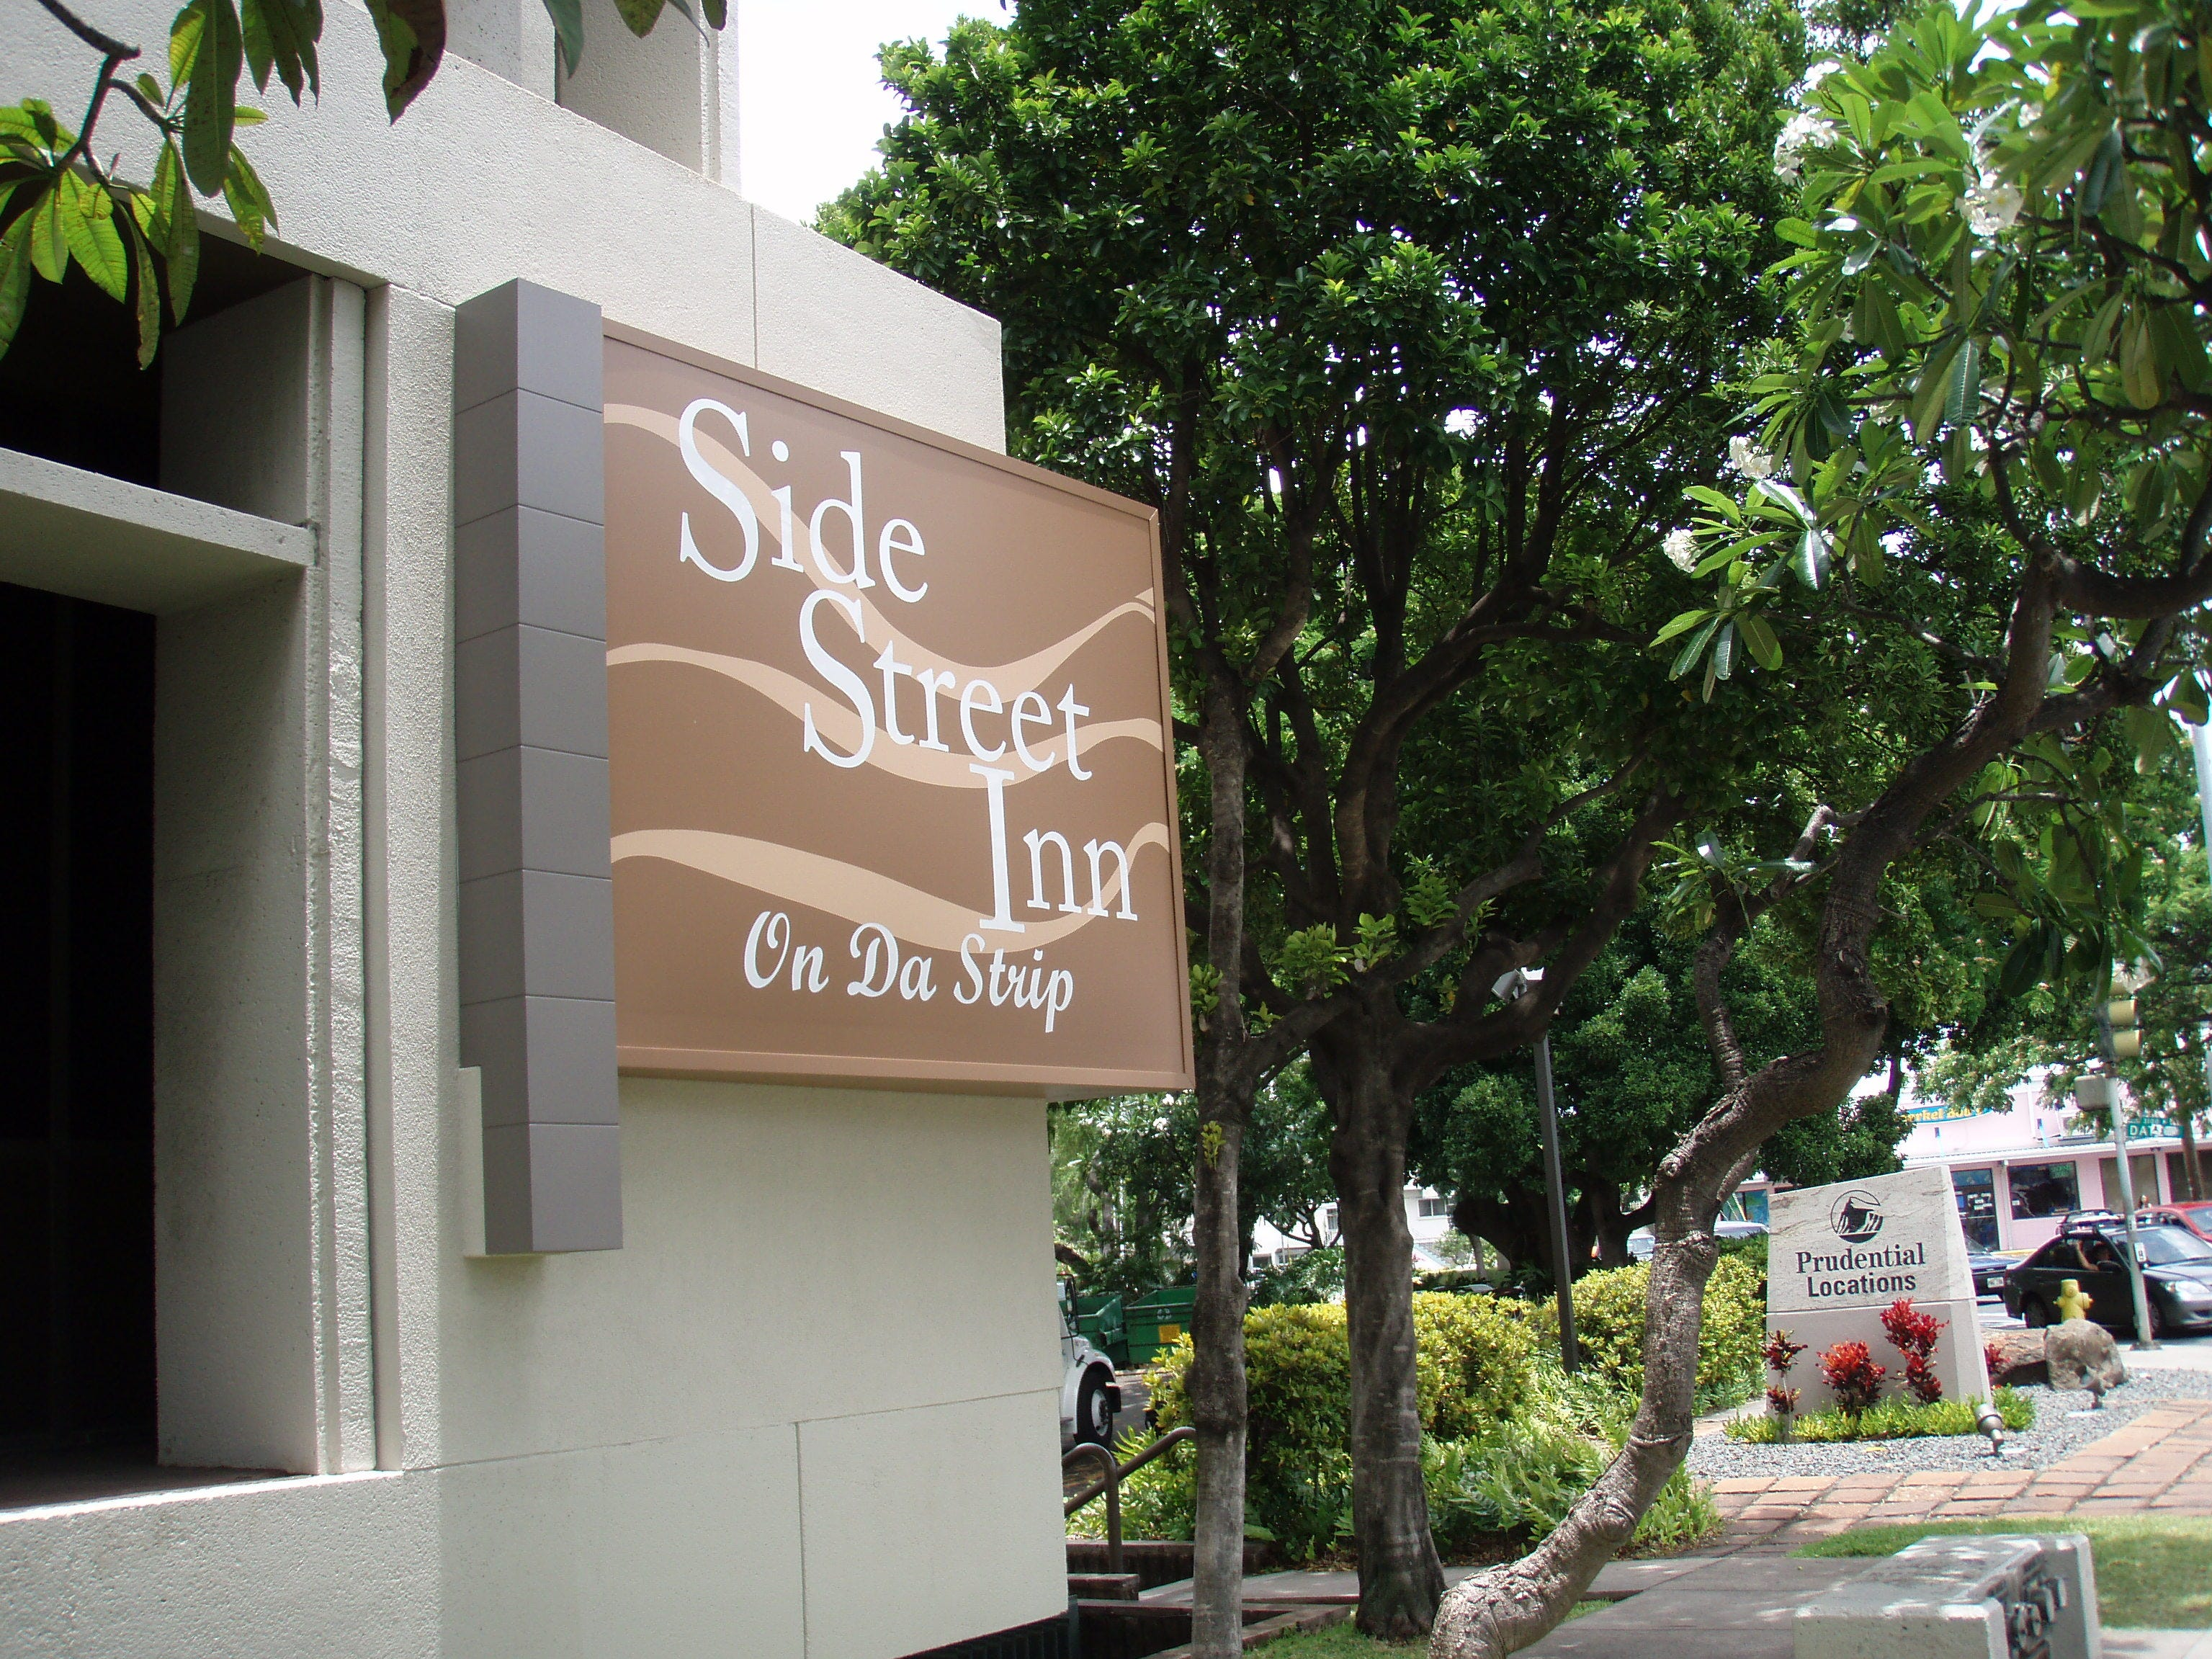 The second location of Honolulu's Side Street Inn opened in 2010 and sits on the far edge of Waikiki.